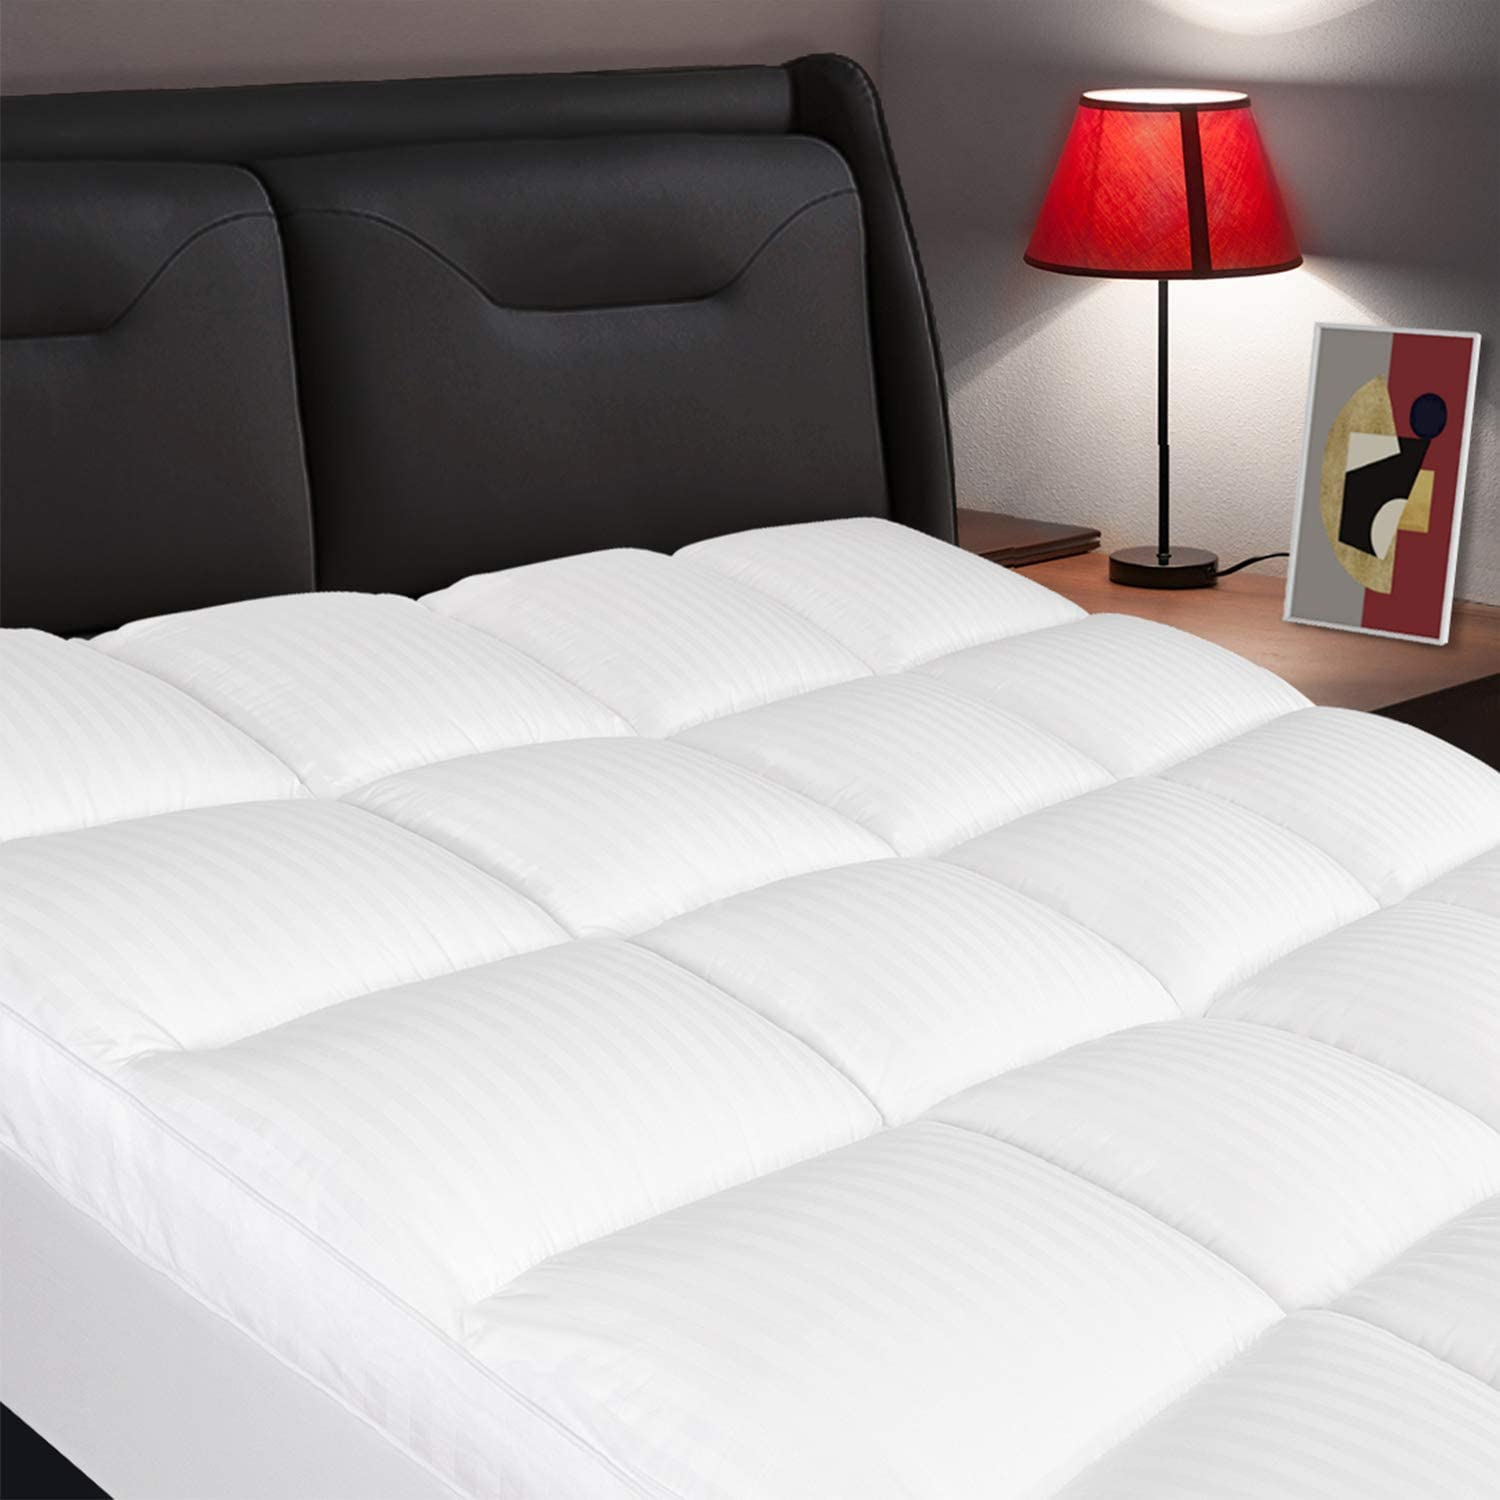 ELEMUSE Twin XL Mattress Topper, Extra Thick Mattress Pad Cover, Plush Quilted Pillowtop with 8-21 Inch Deep Pocket, Soft Hypoallergenic Down Alternative Fill